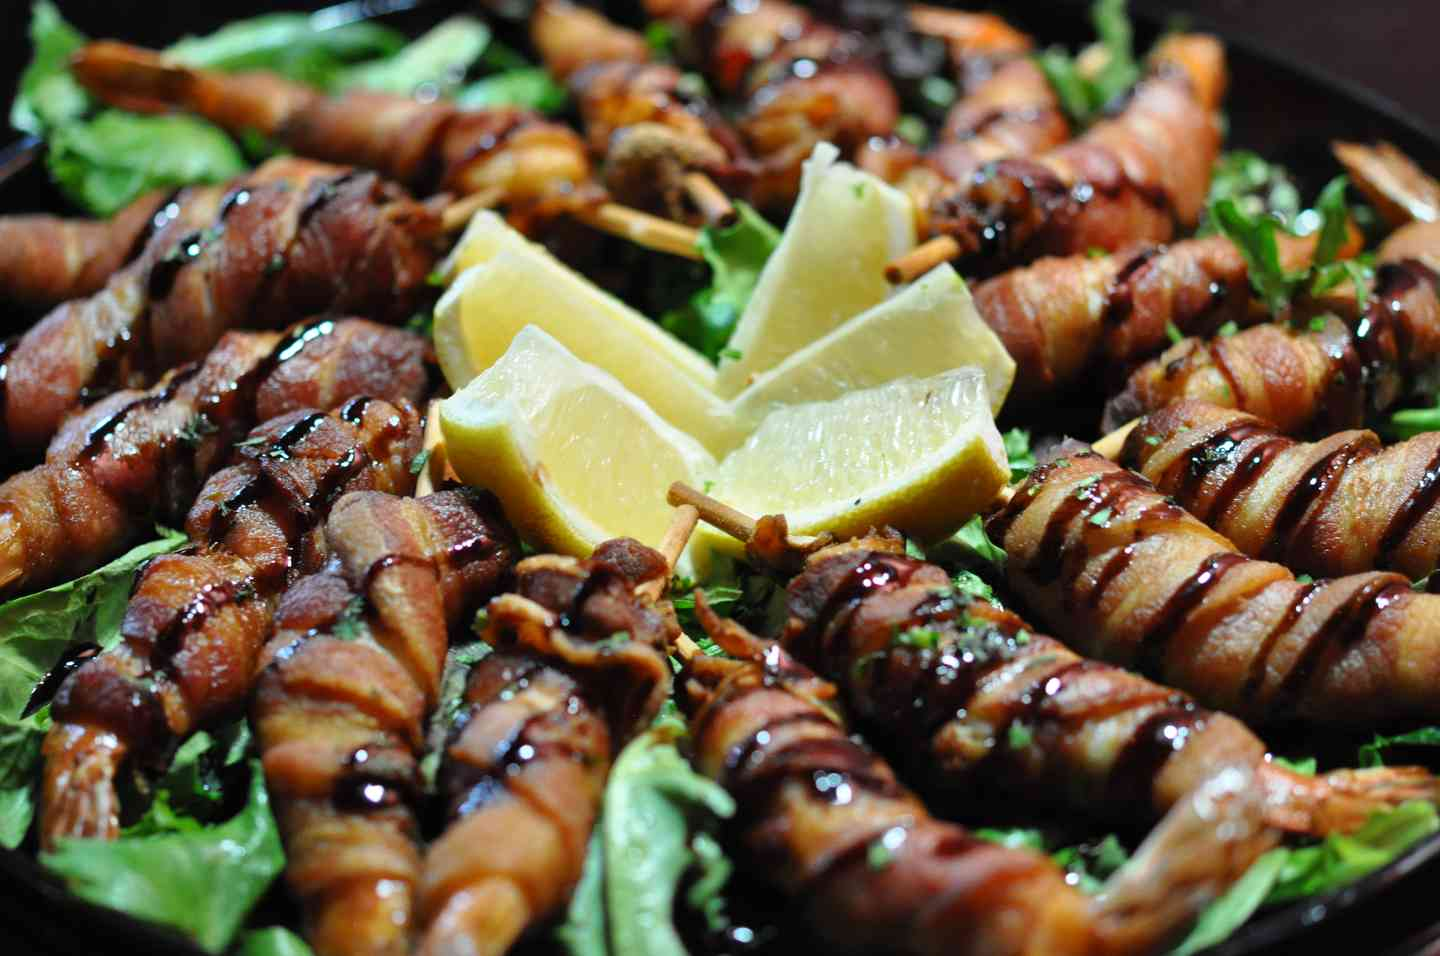 BACON WRAPPED SHRIMP PLATTERS